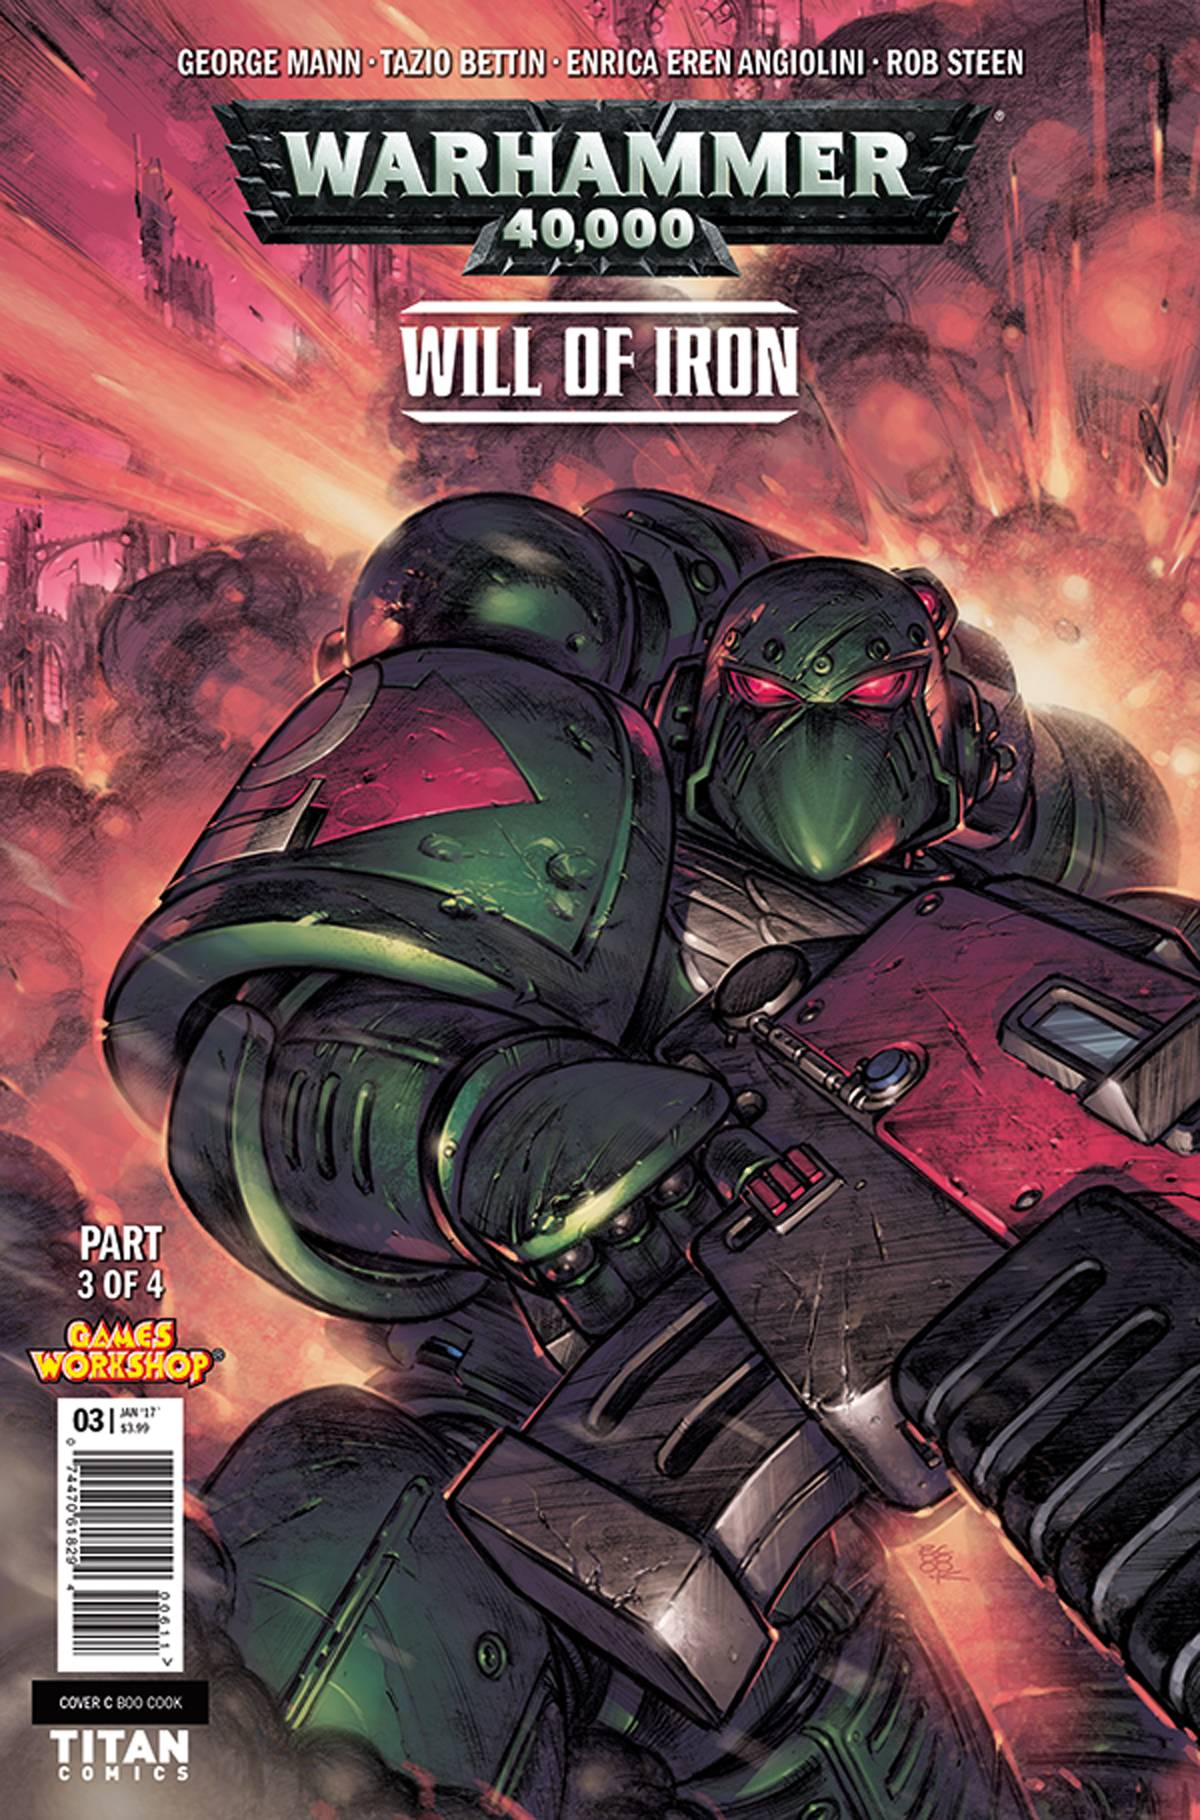 WARHAMMER 40000 WILL OF IRON #3 (OF 4) CVR C COOK